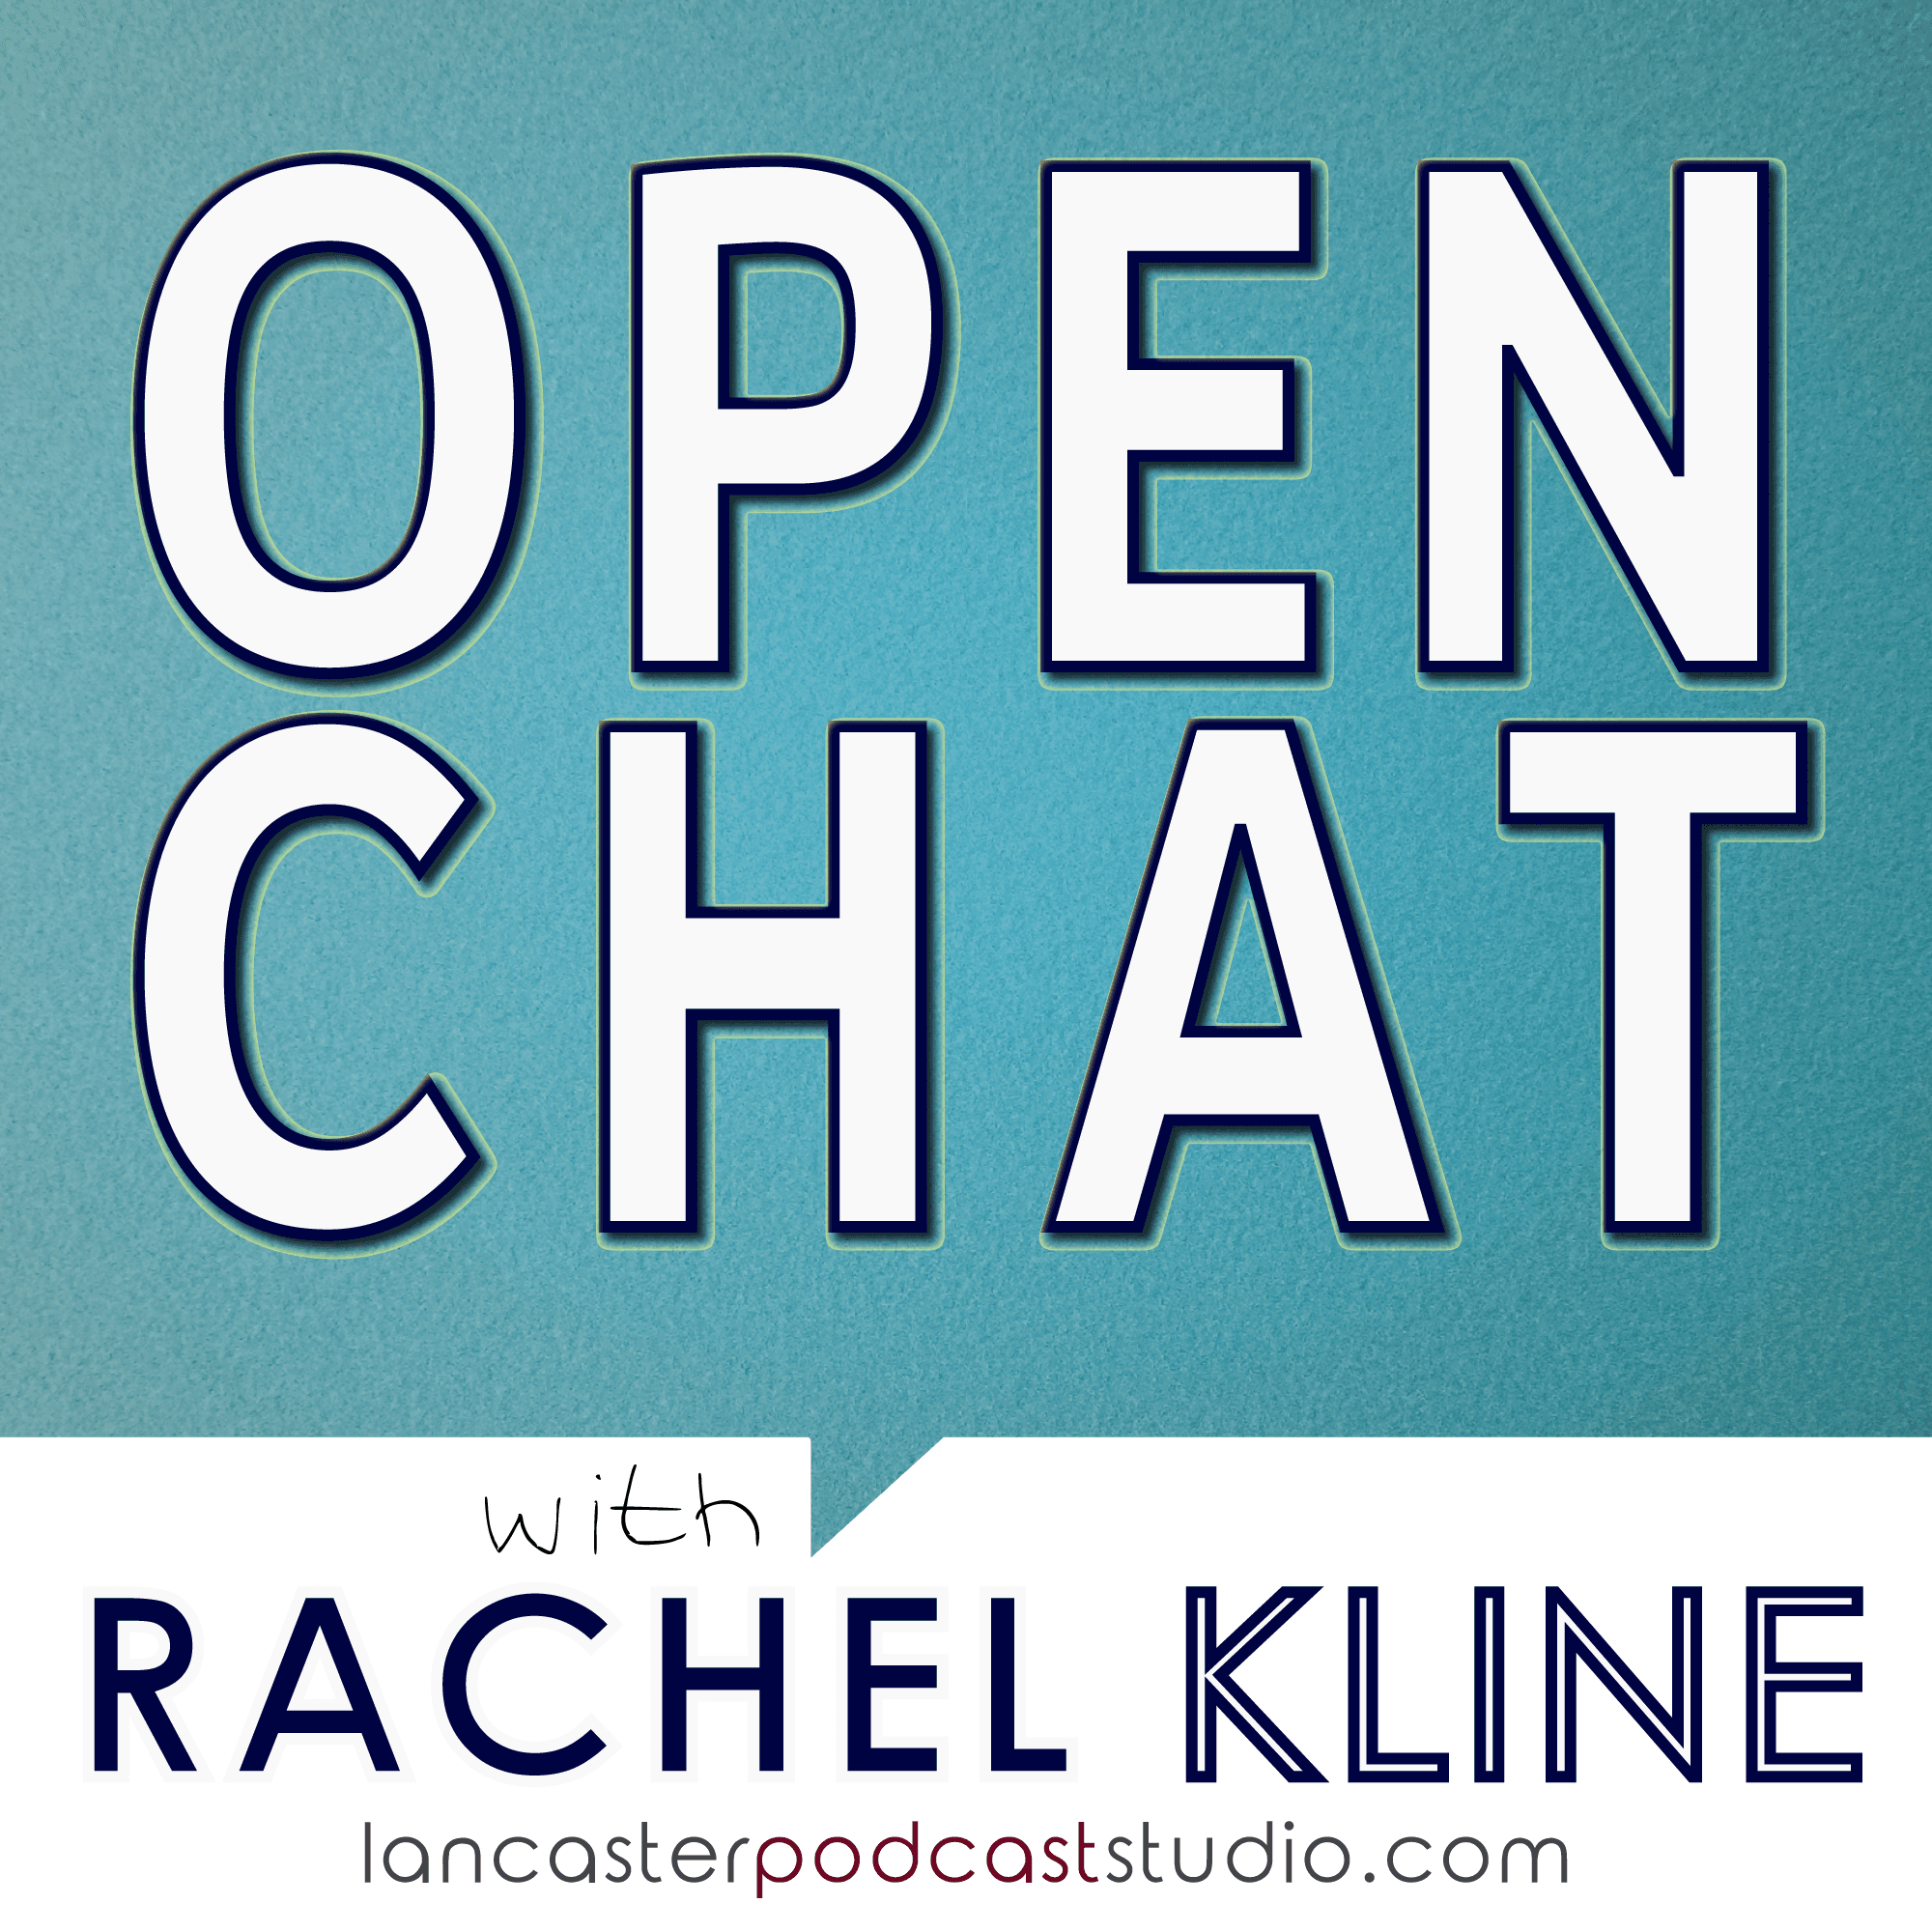 Rachel Kline is the host of Open Chat at the Lancaster Podcast Studio